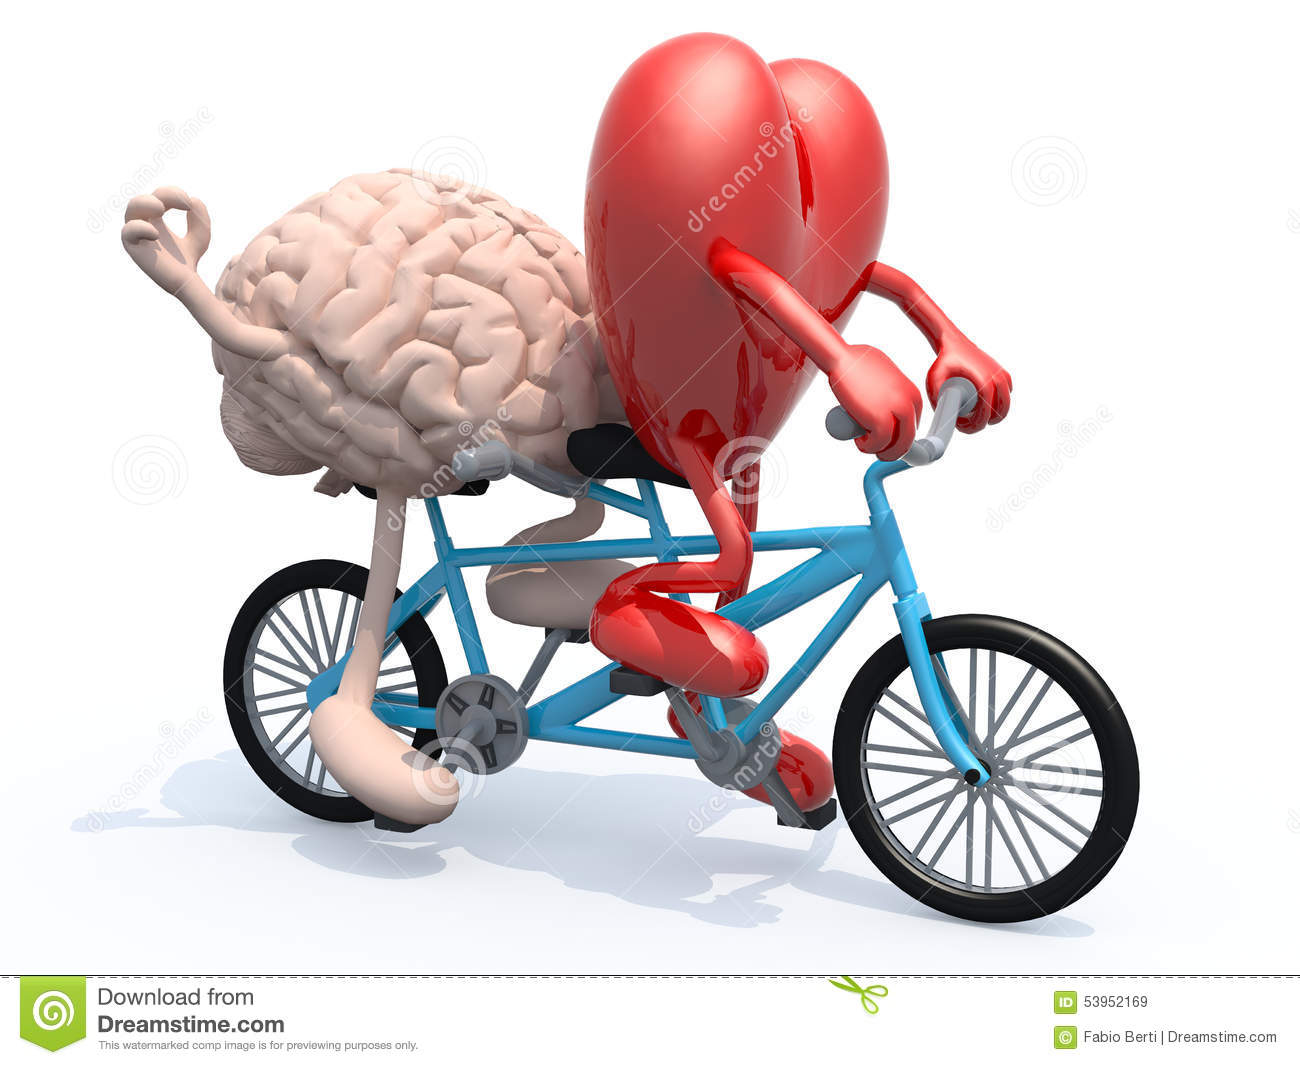 Human brain and heart with arms and legs riding tandem bicycle, 3d ...